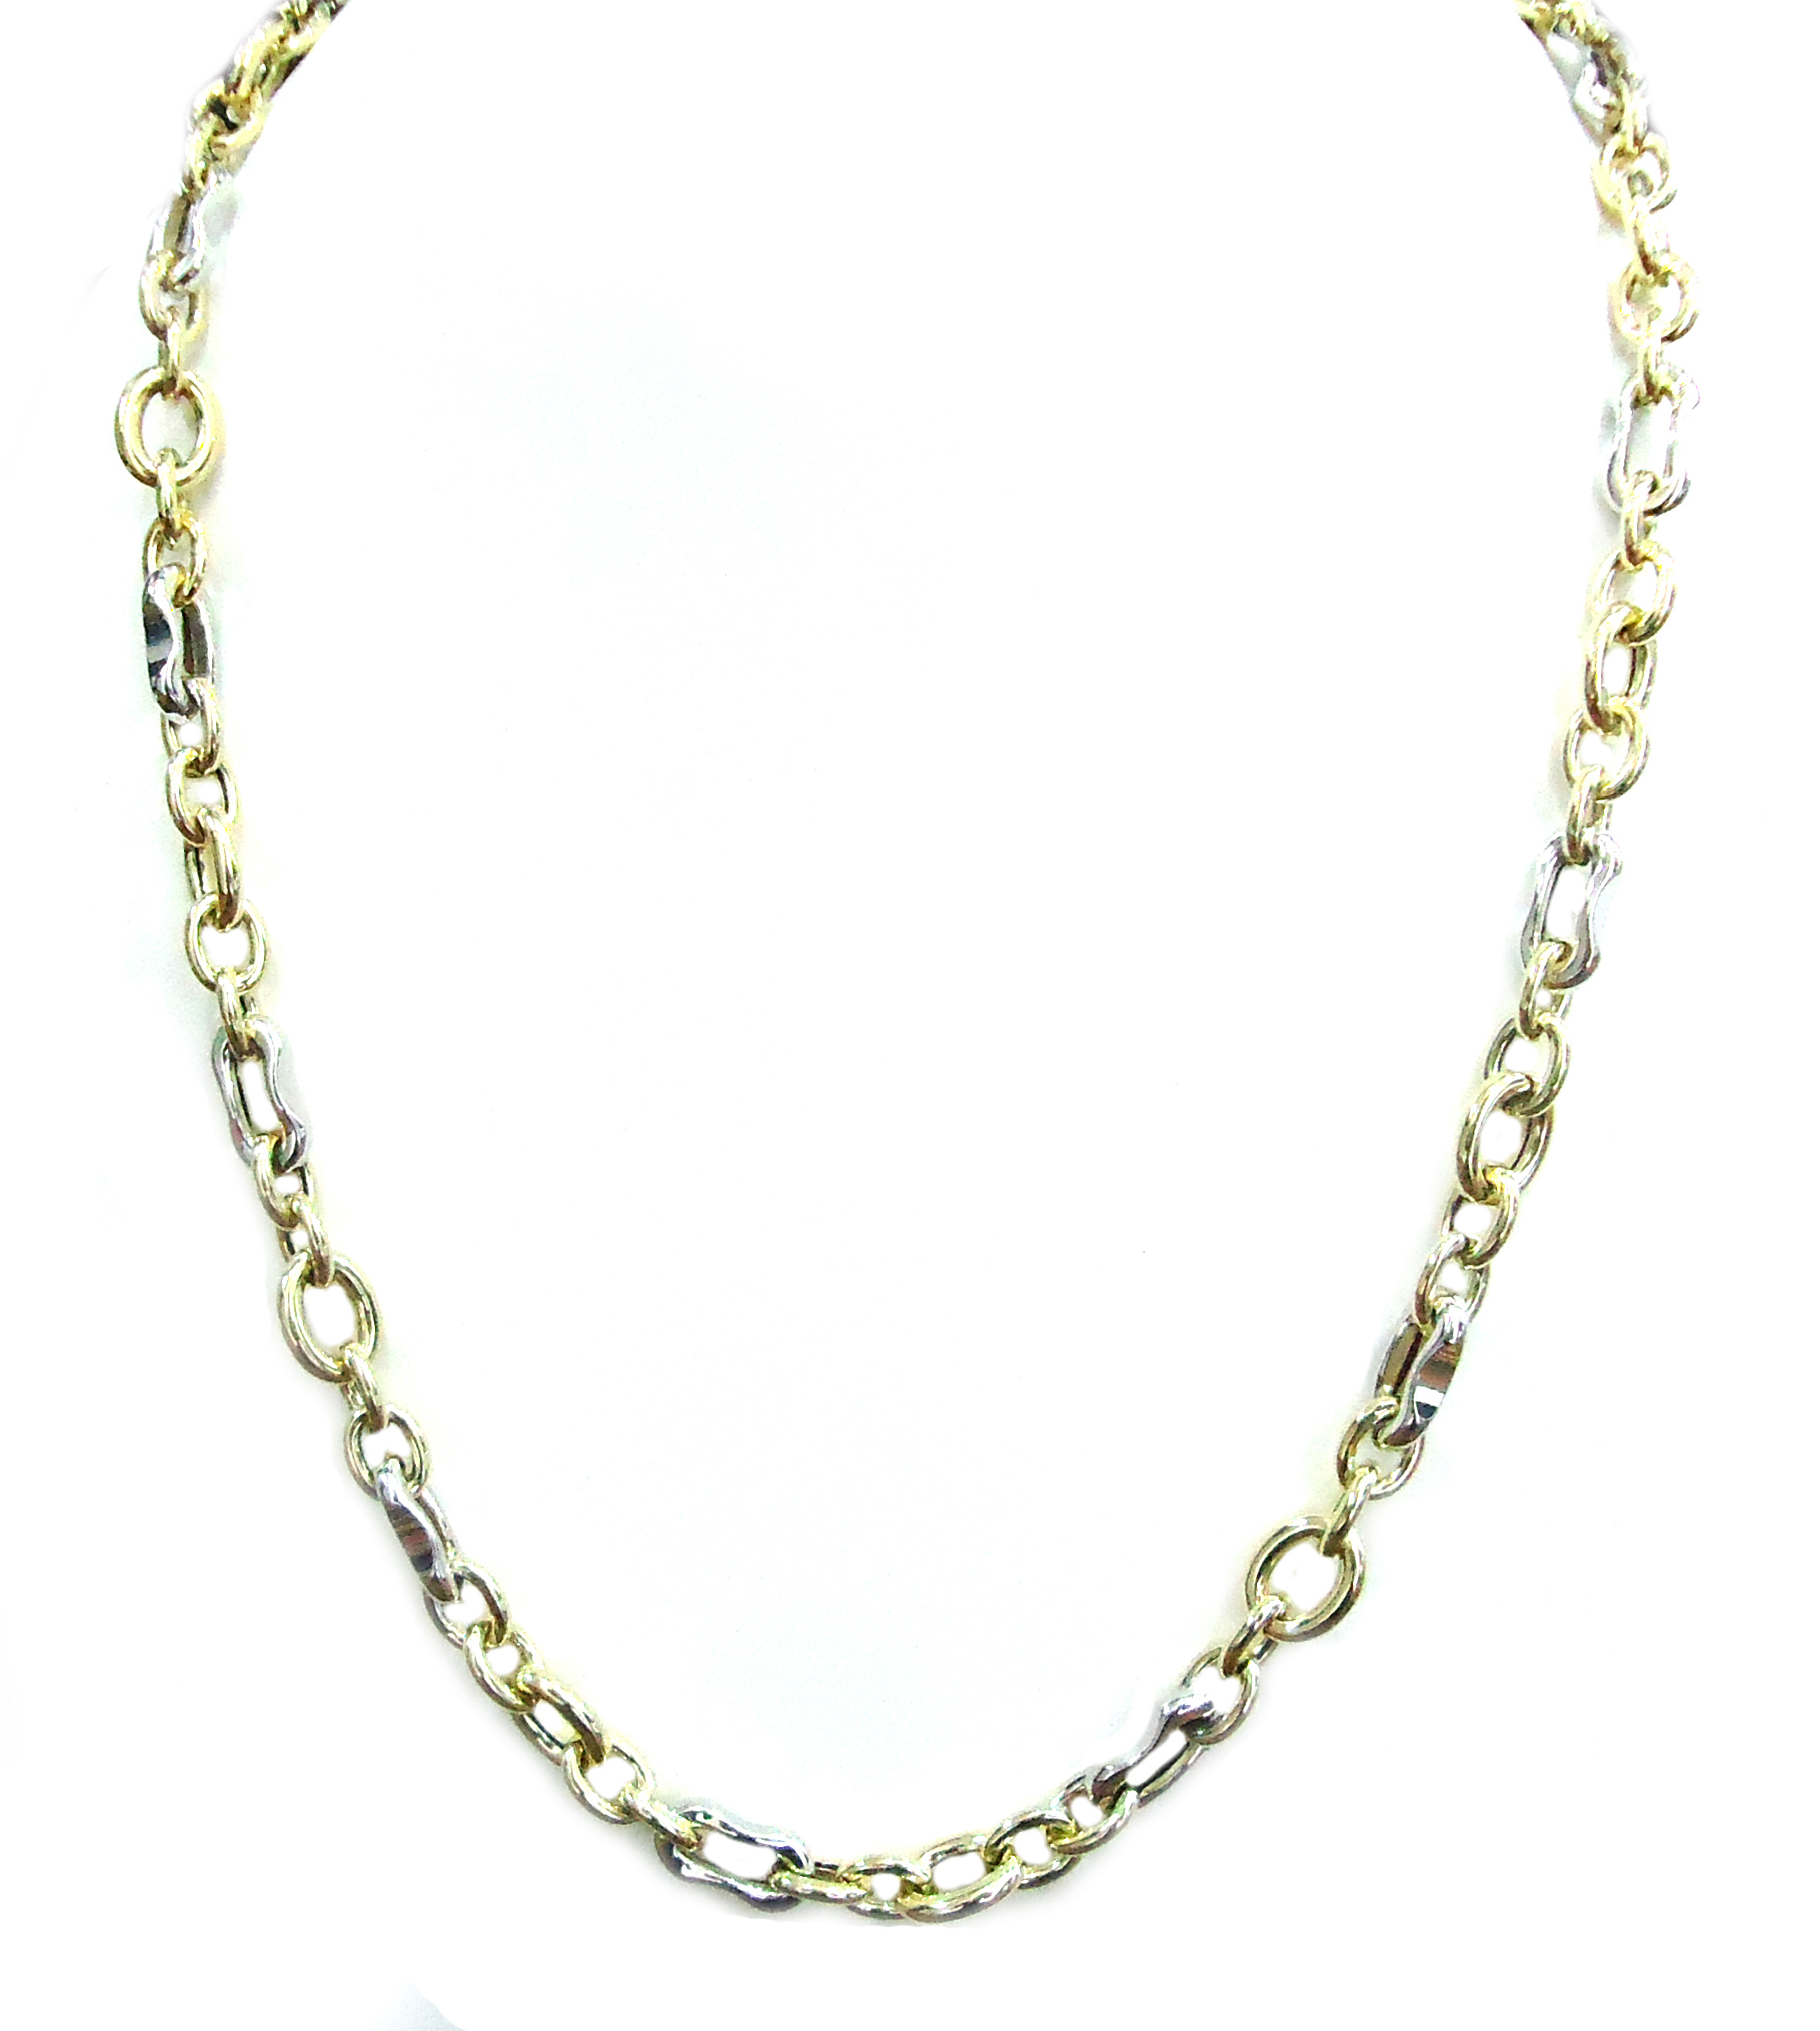 White and yellow gold chain necklace!